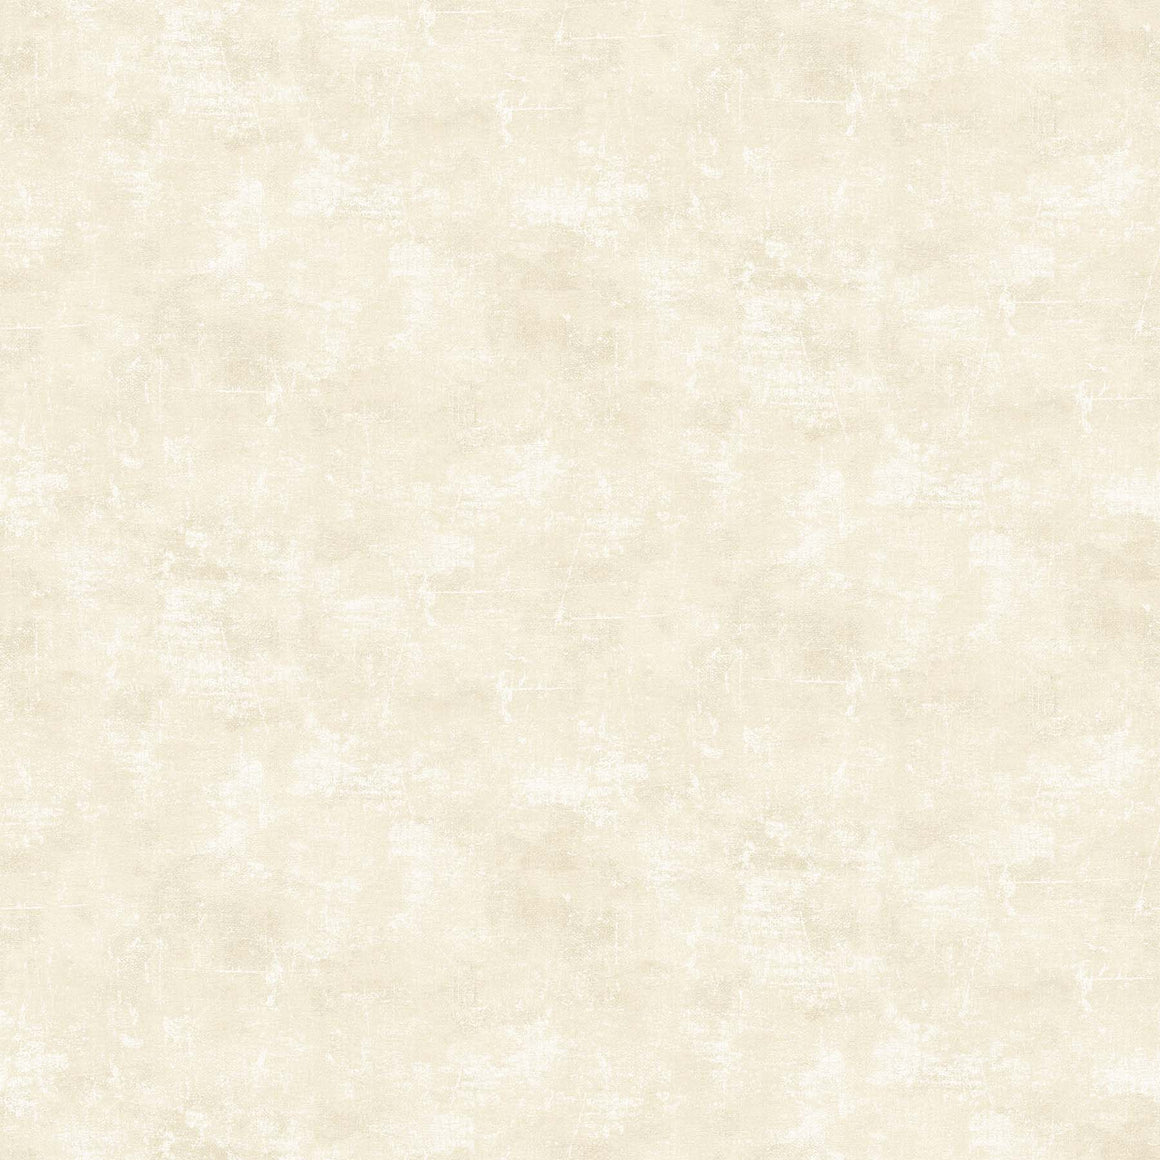 French Vanilla - Canvas Texture - 9030-11, Designer Fabric, Northcott, [variant_title] - Mad About Patchwork